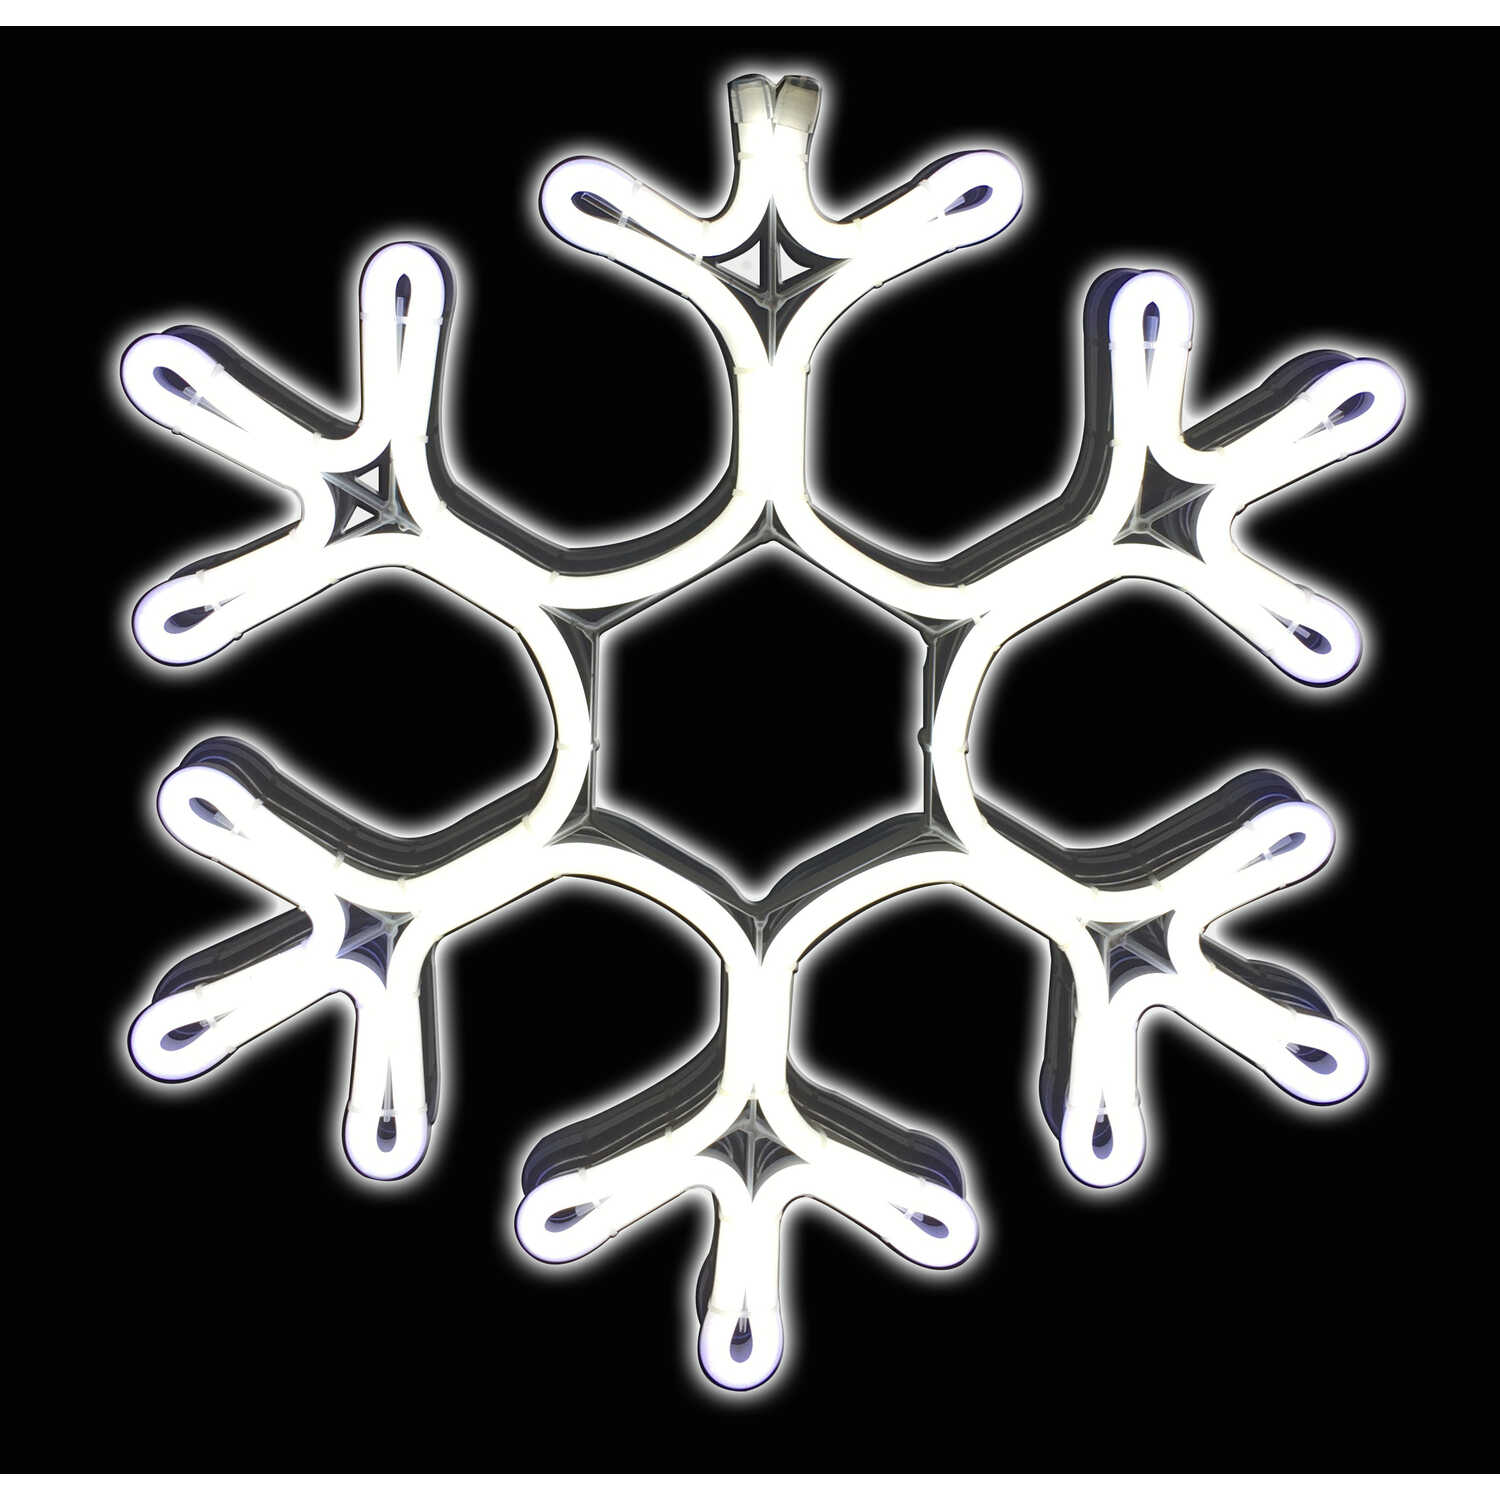 Sienna  Neon LED Snowflake  Christmas Decoration  Metal  White  1 pk